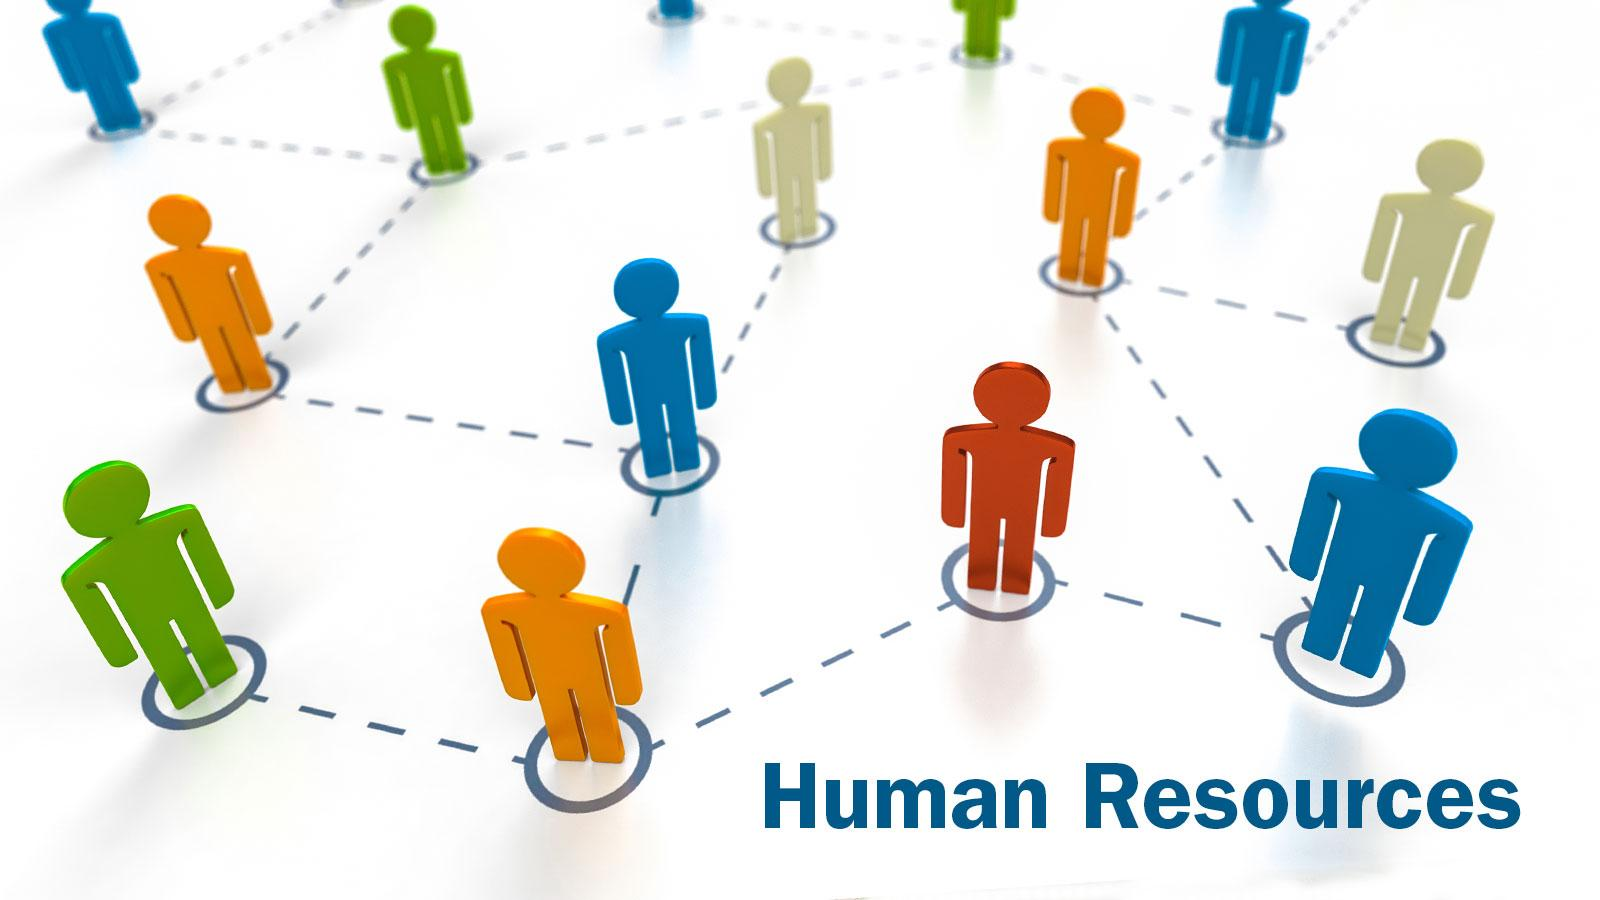 humen resources Find human resources articles, products and services for career seekers, recruiters and hr professionals.